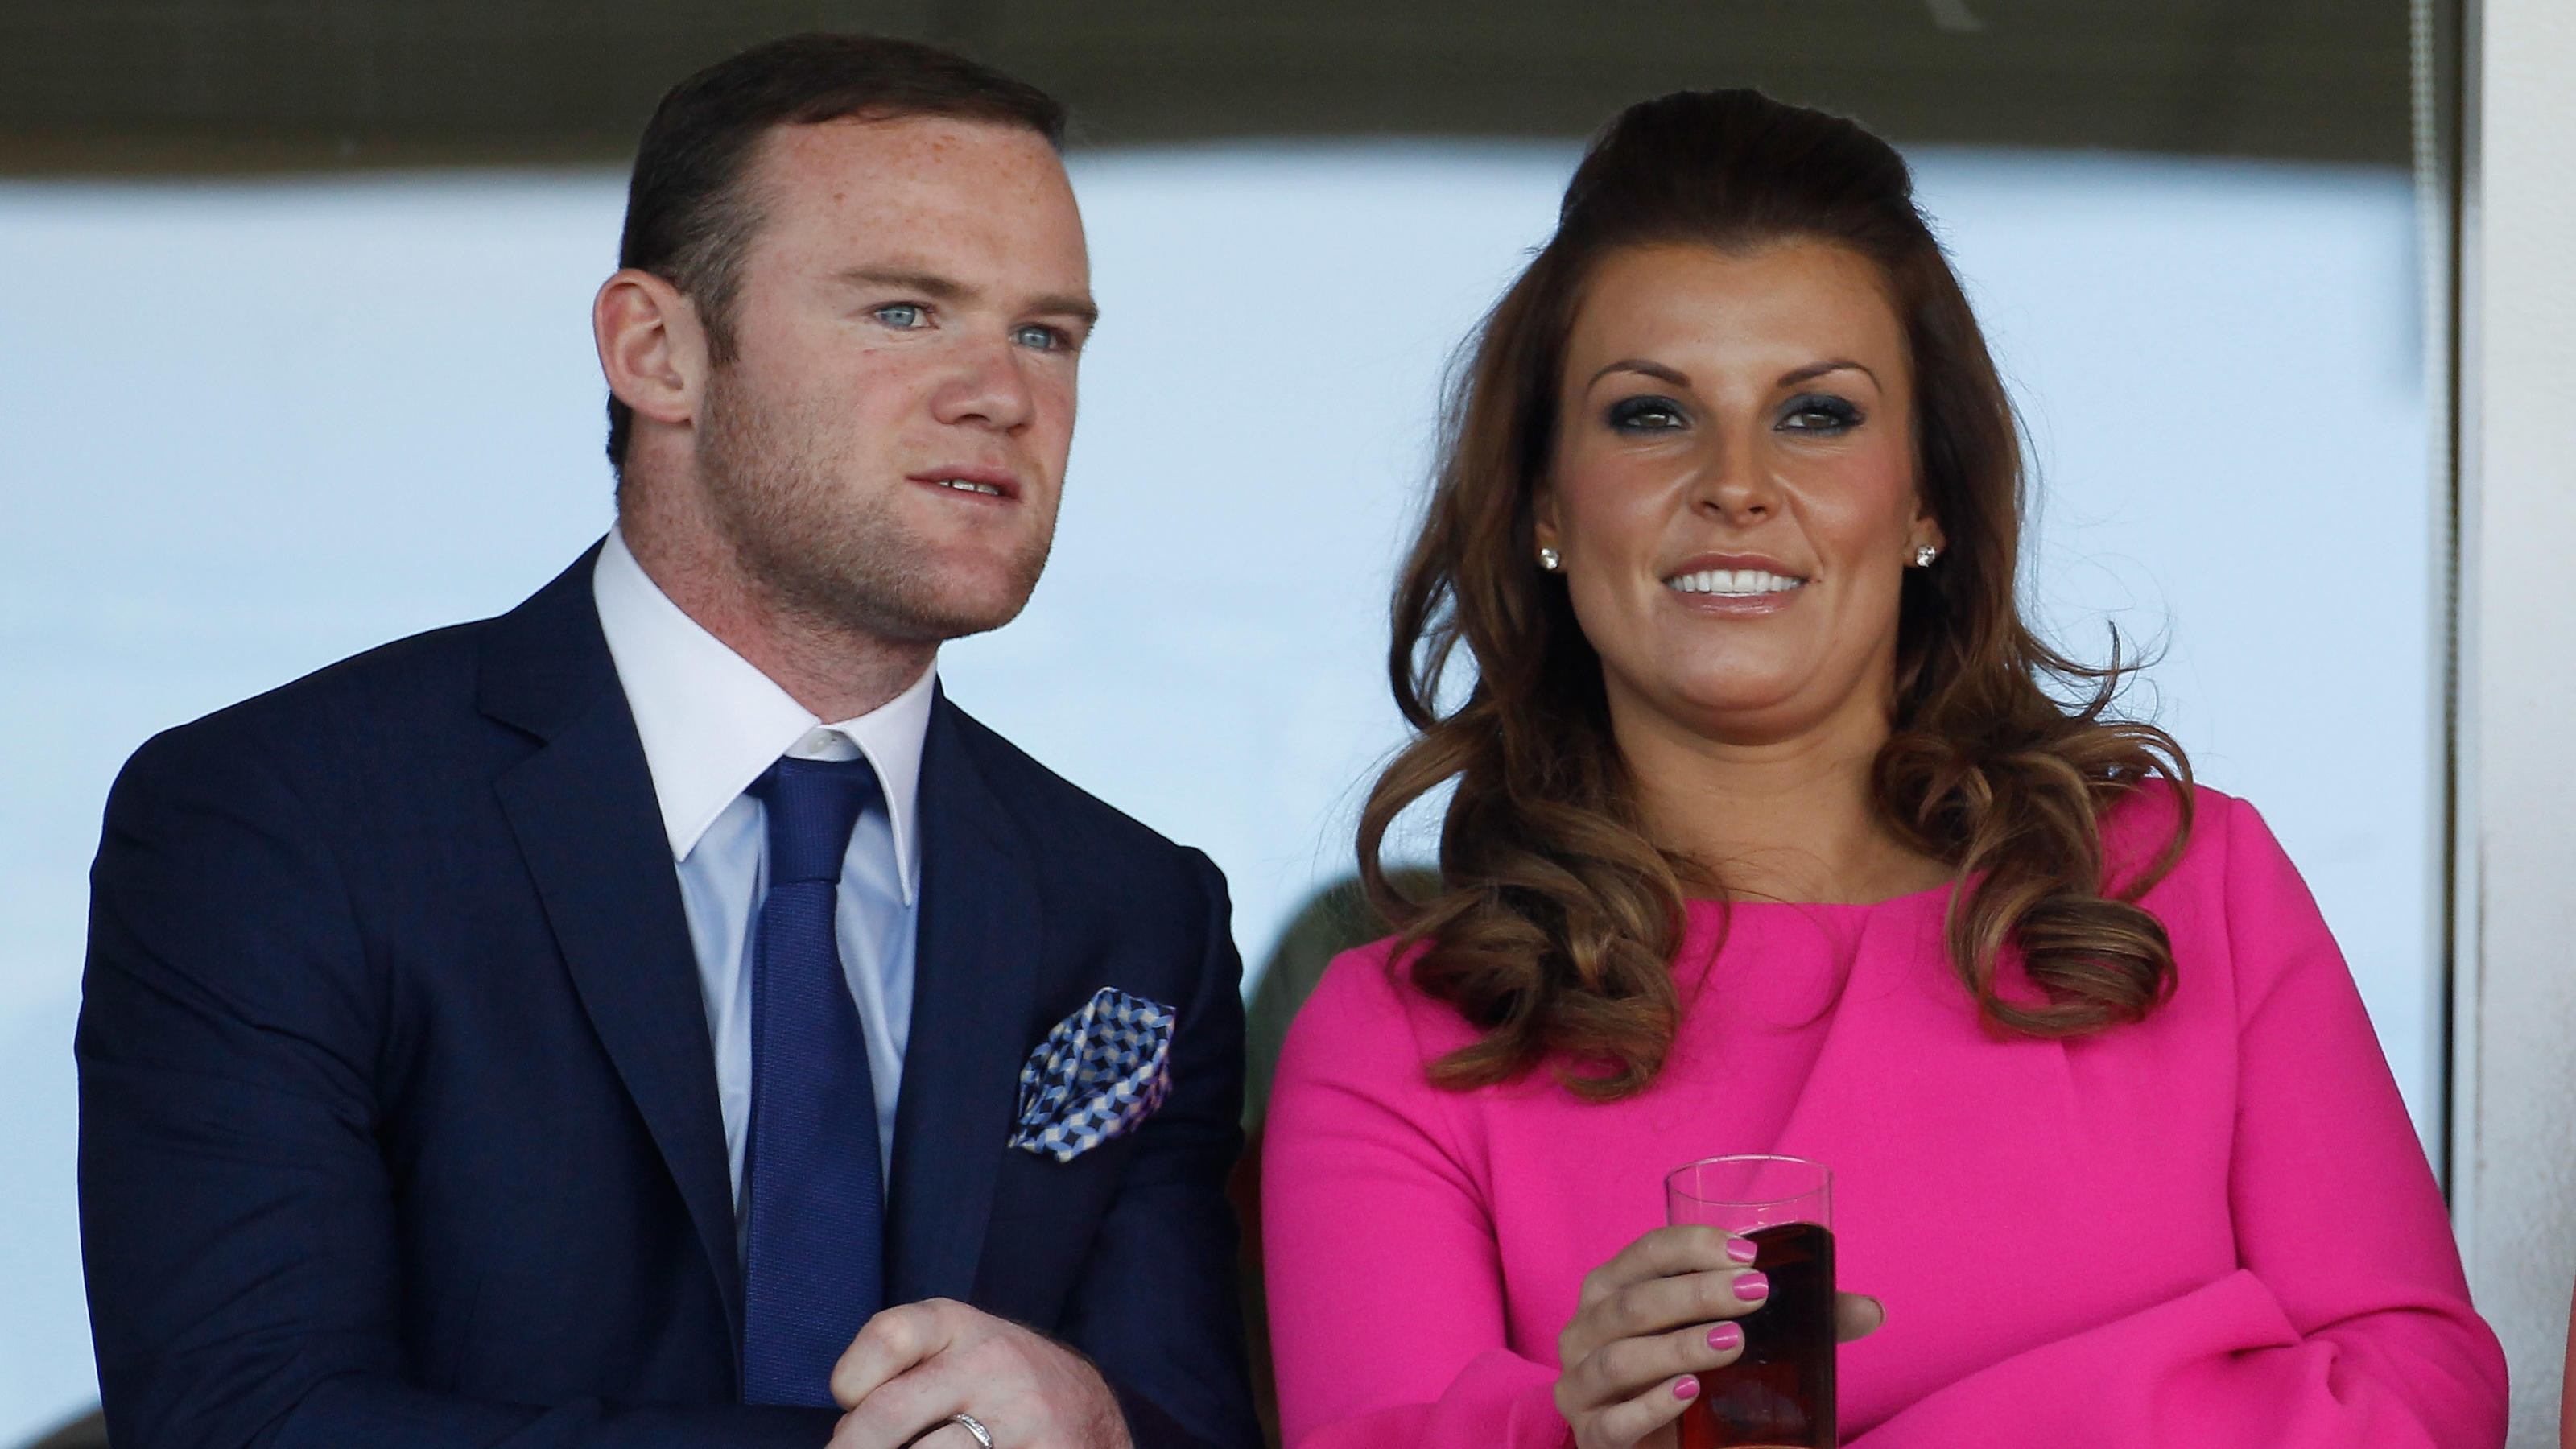 LIVERPOOL, ENGLAND - APRIL 12:  Manchester United football player Wayne Rooney and his wife Coleen watch the racing during the first day of the Aintree Grand National meeting on April 12, 2012 in Aintree, England. The first day, known as Liverpool Da